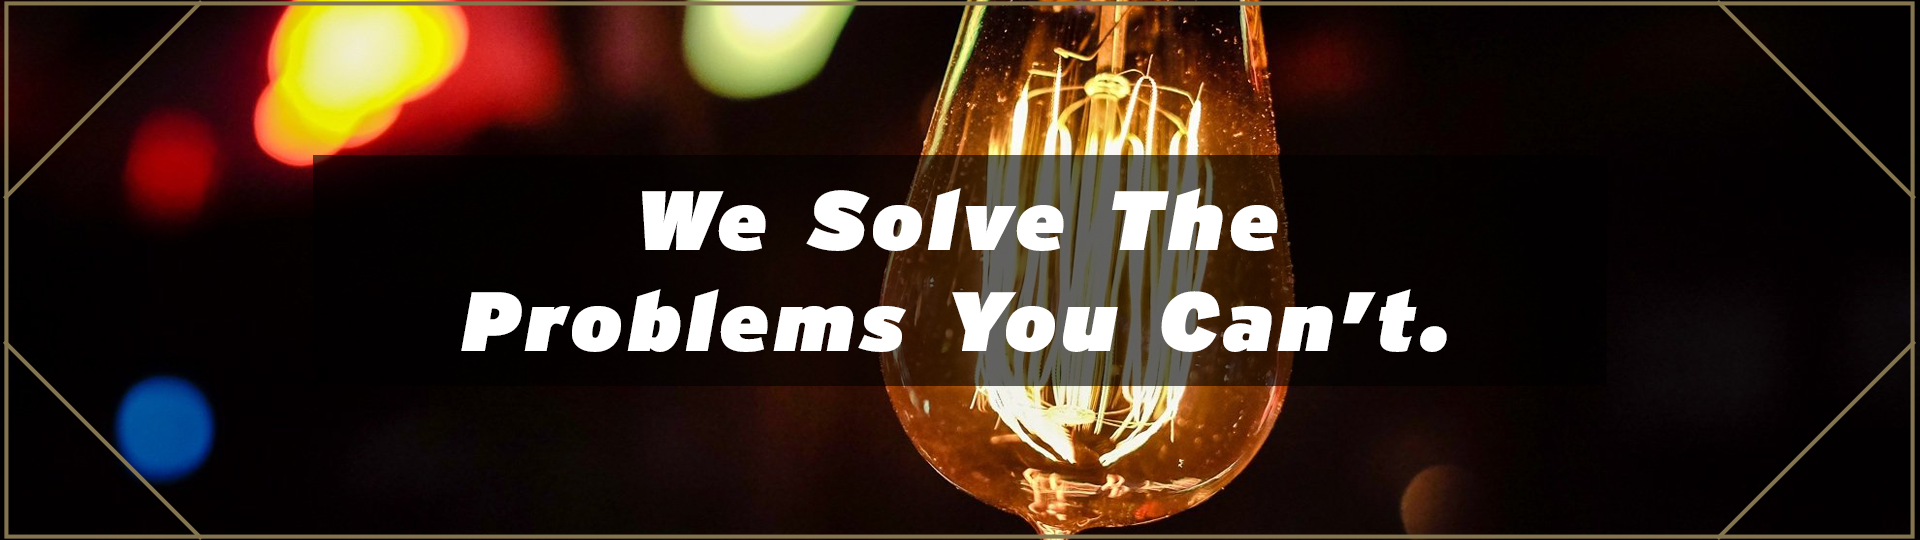 We Solve The Problem You Can't.